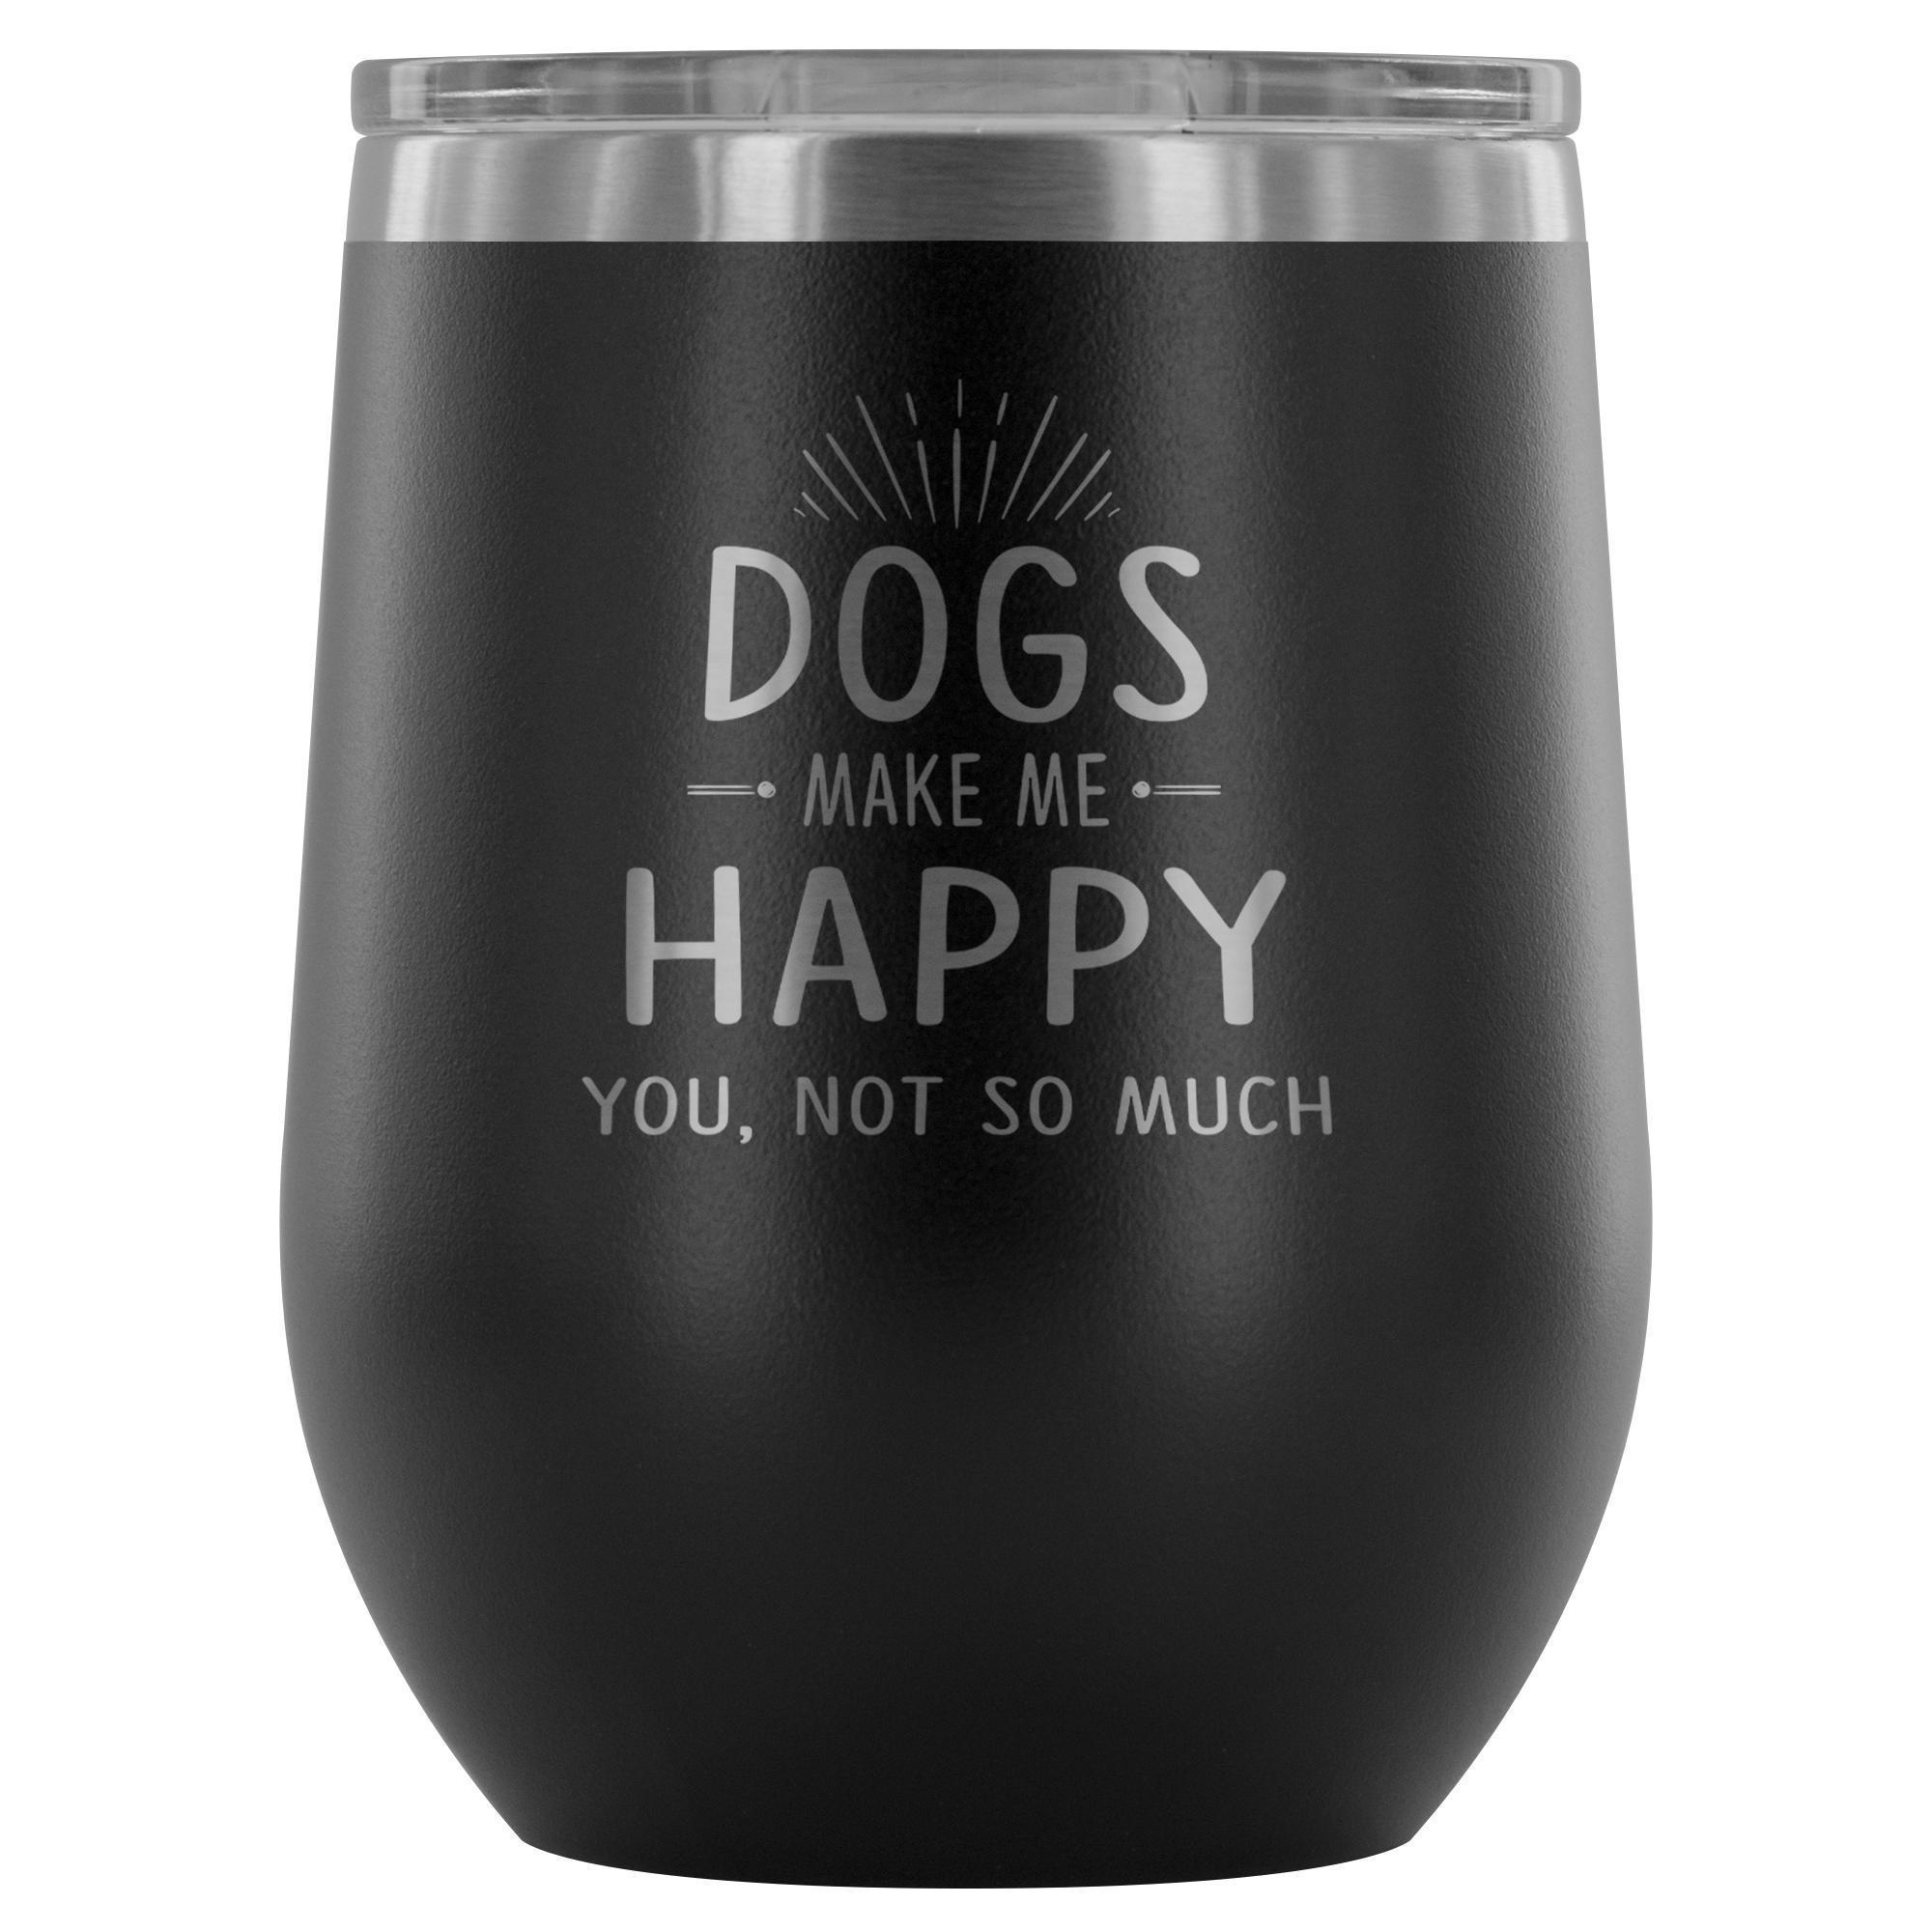 Dog make me happy you, not so much 12oz Wine Tumbler-Wine Tumbler-I love Veterinary